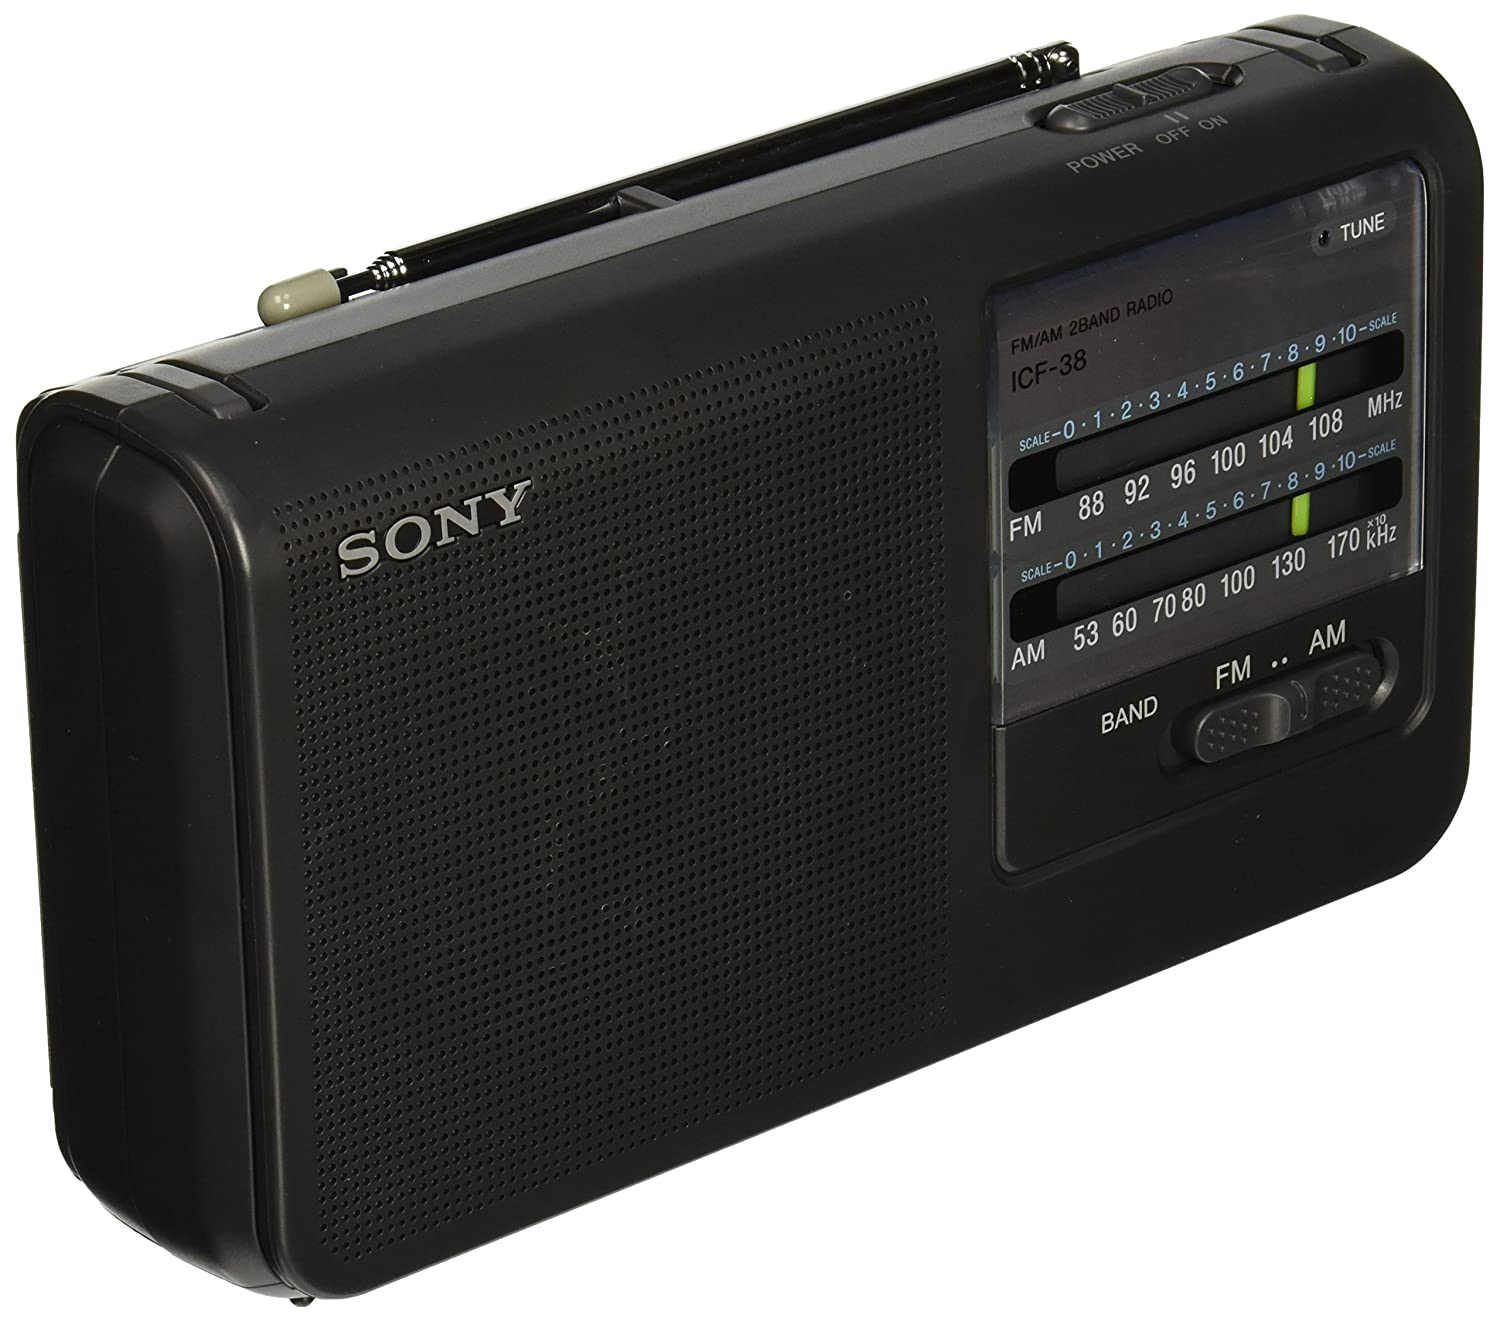 Amazon sony icf38 portable amfm radio black home audio amazon sony icf38 portable amfm radio black home audio theater sciox Image collections